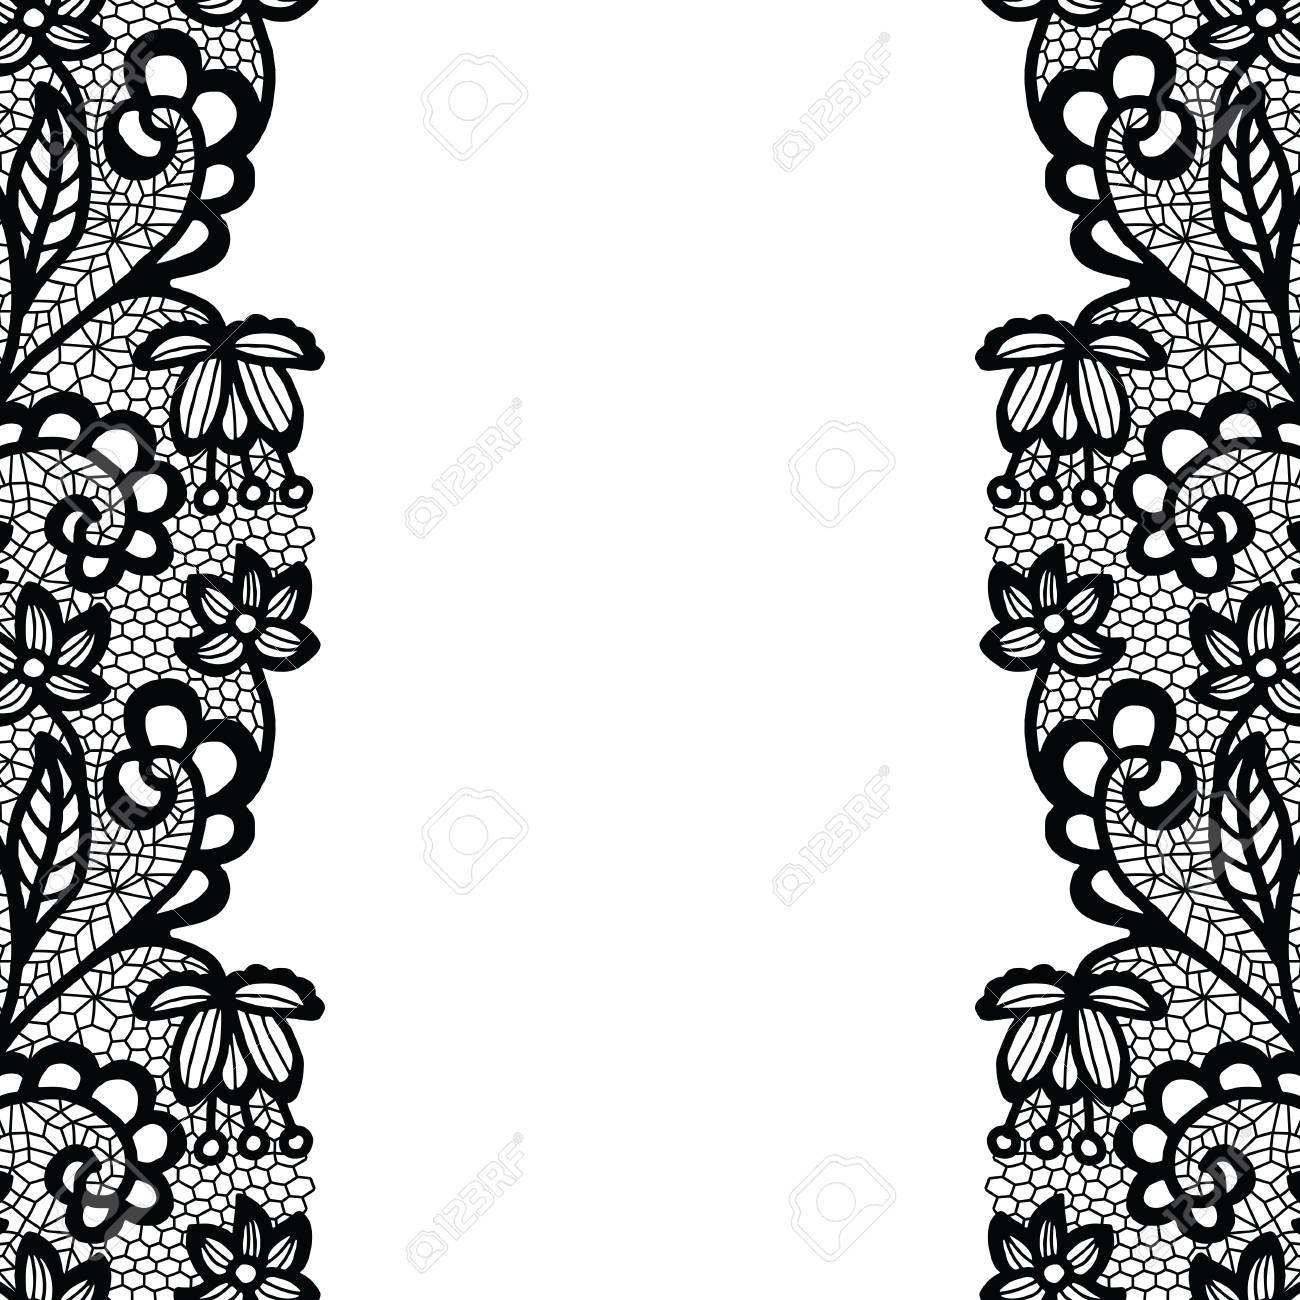 seamless lace border vector illustration white lacy vintage rh 123rf com gold lace border vector lace border vector free download